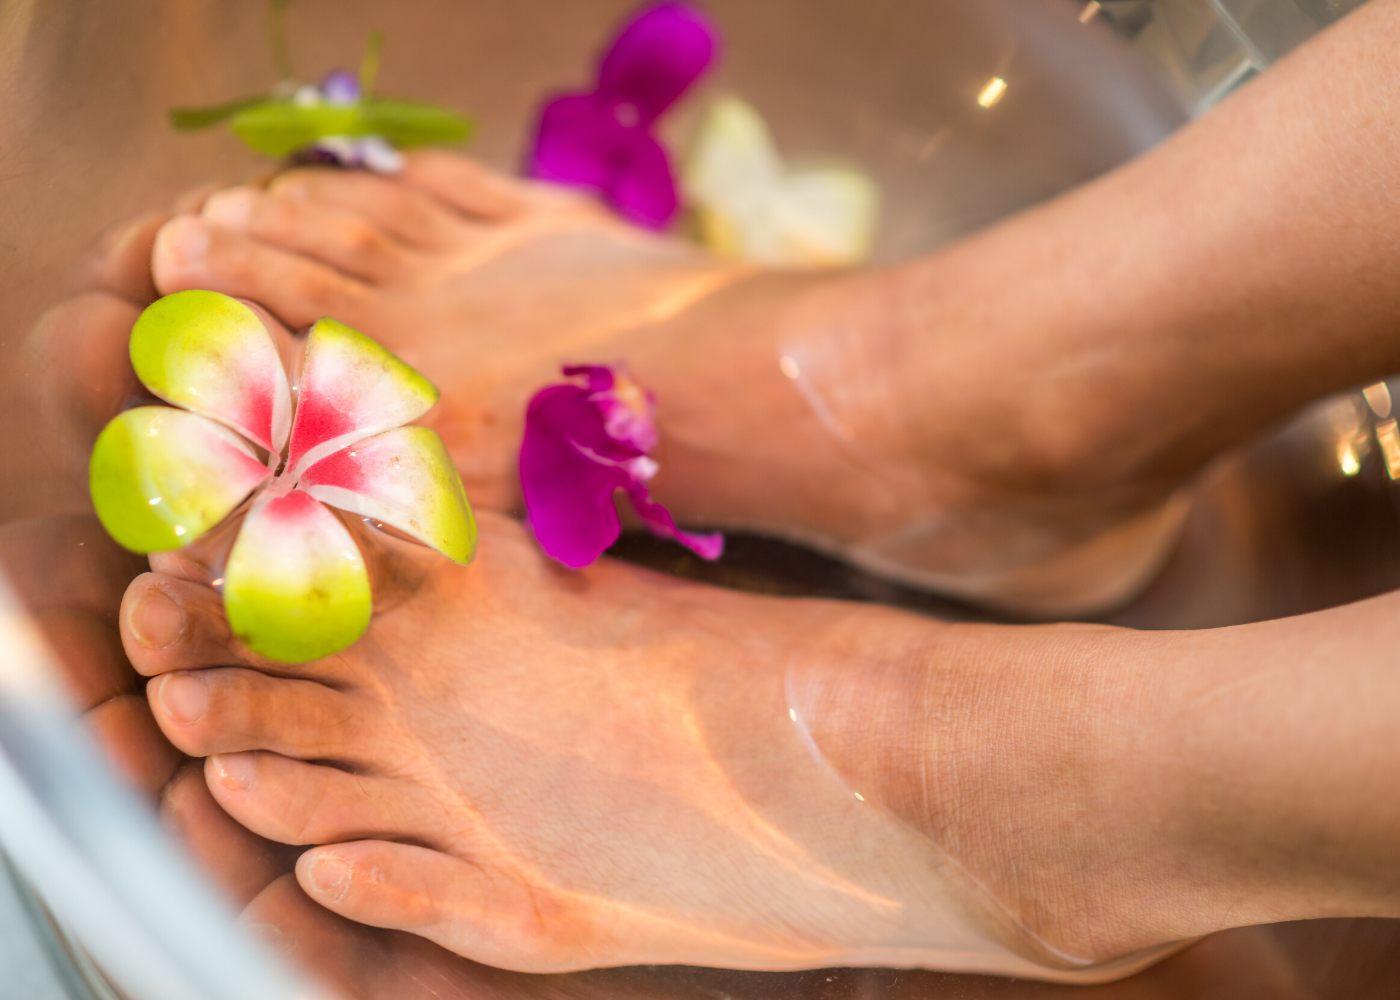 Soften dry skin and calluses with a foot soak